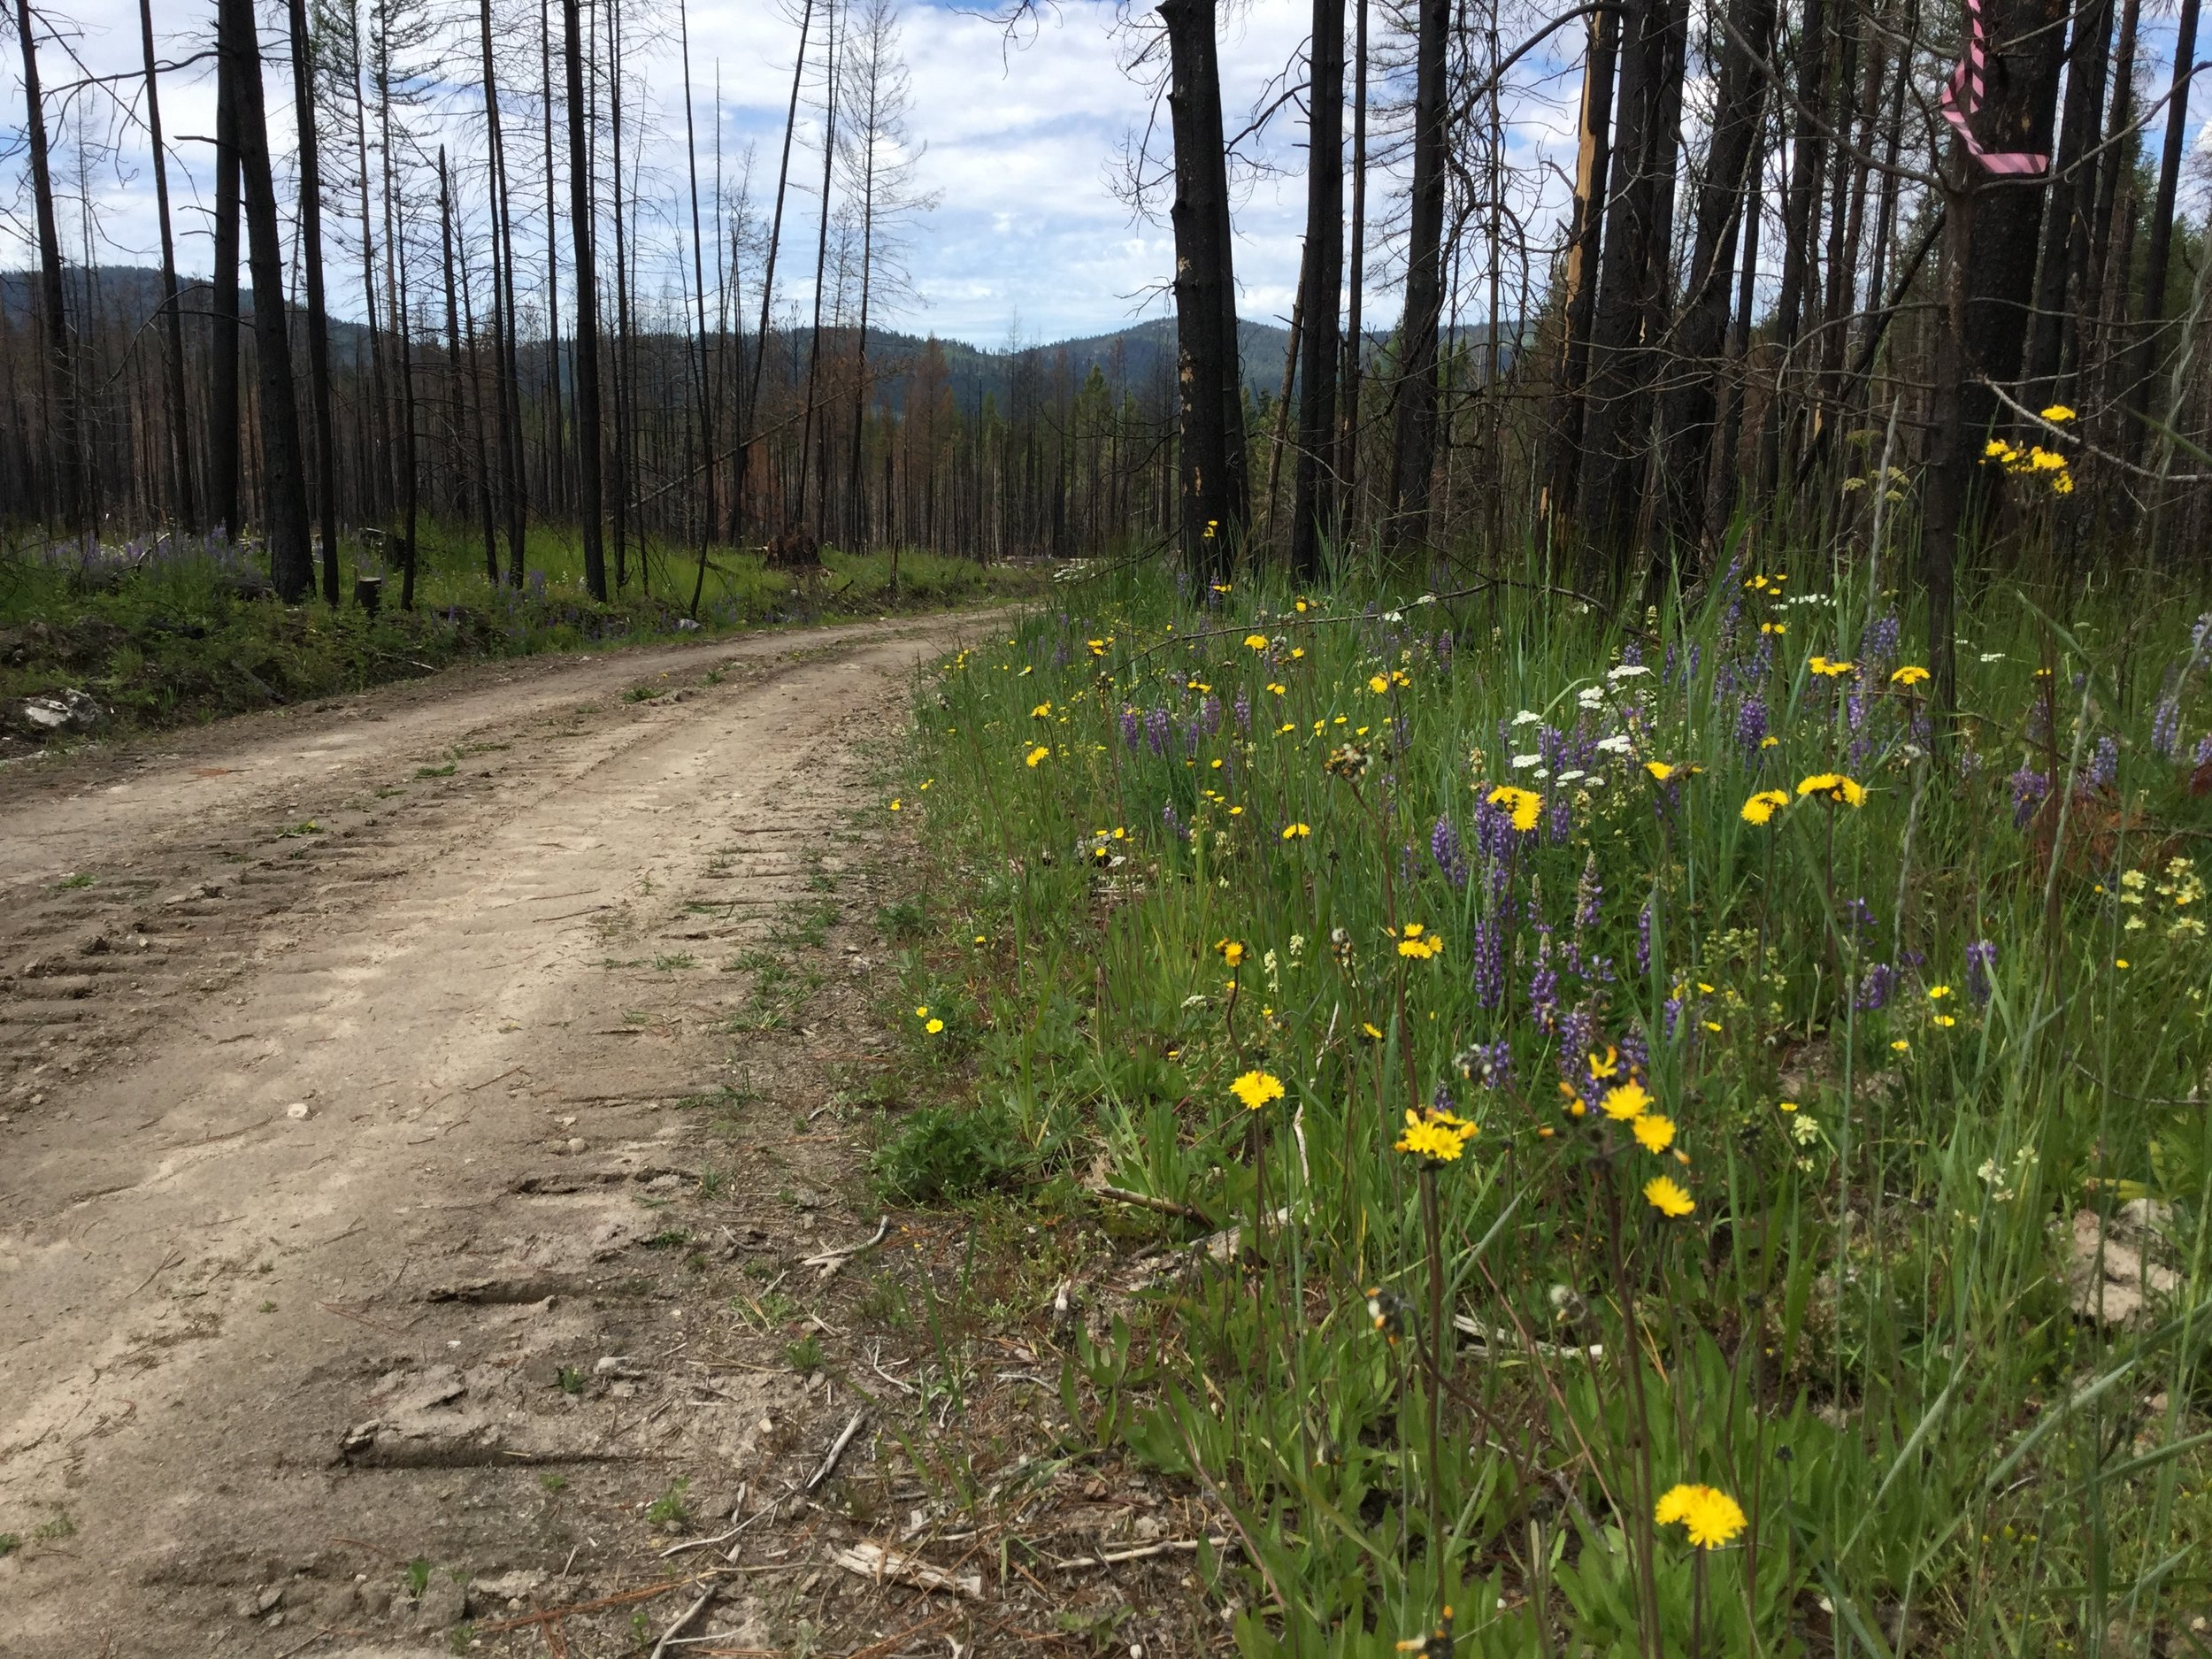 A roadside in the recent North Star fire was the perfect place for a new infestation of yellow hawkweed to emerge.